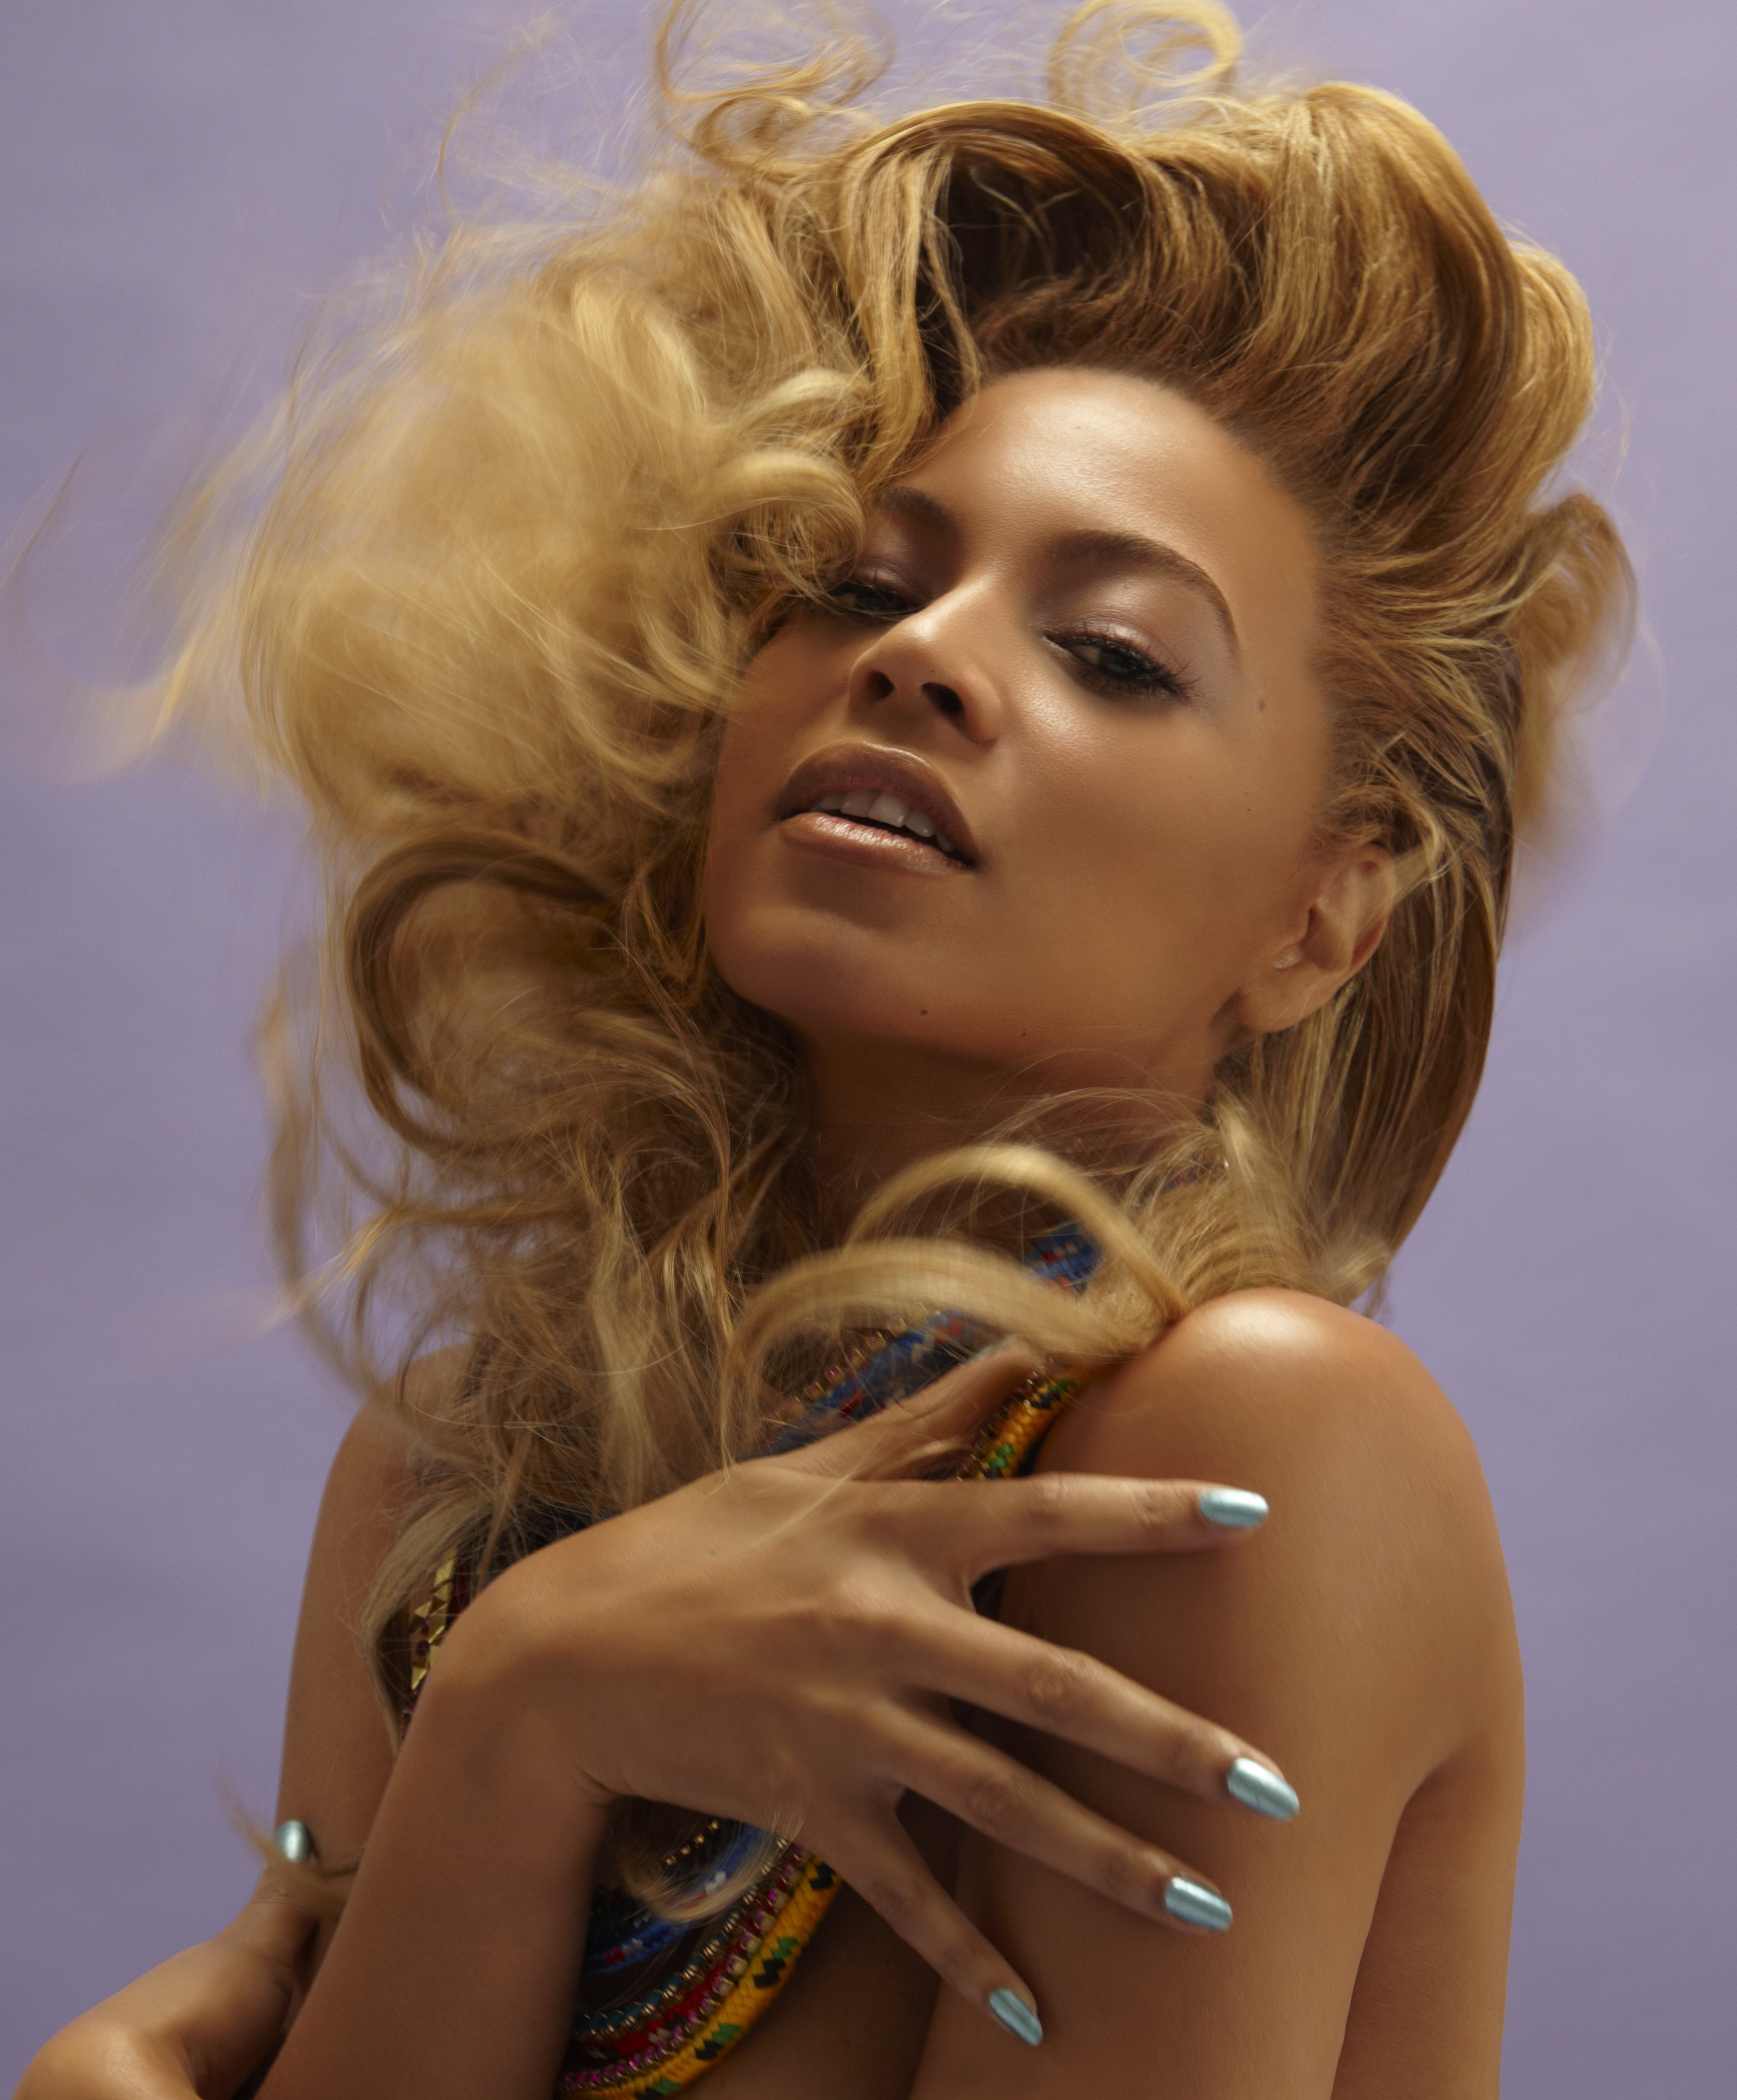 Beyonce Hot Covers - Beyonce Hot Covers